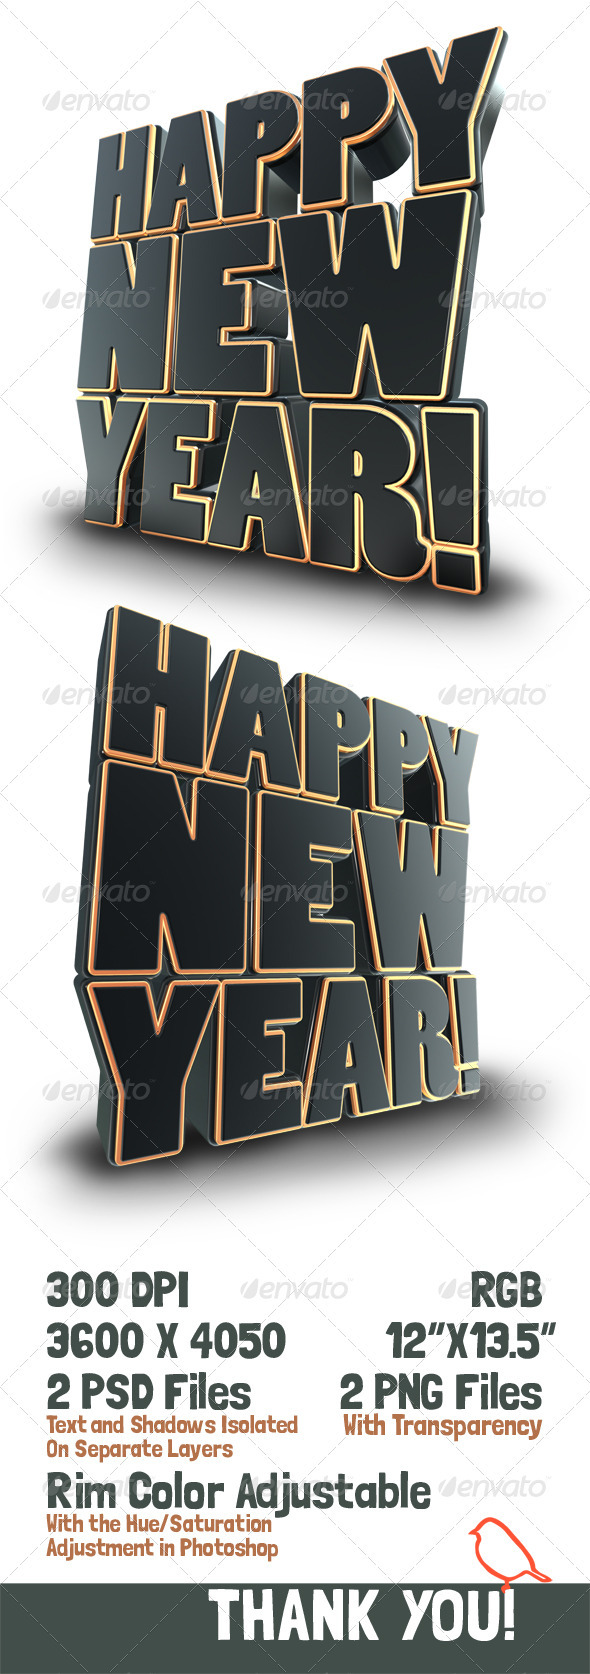 GraphicRiver Happy New Year 3D Text Render 3286175